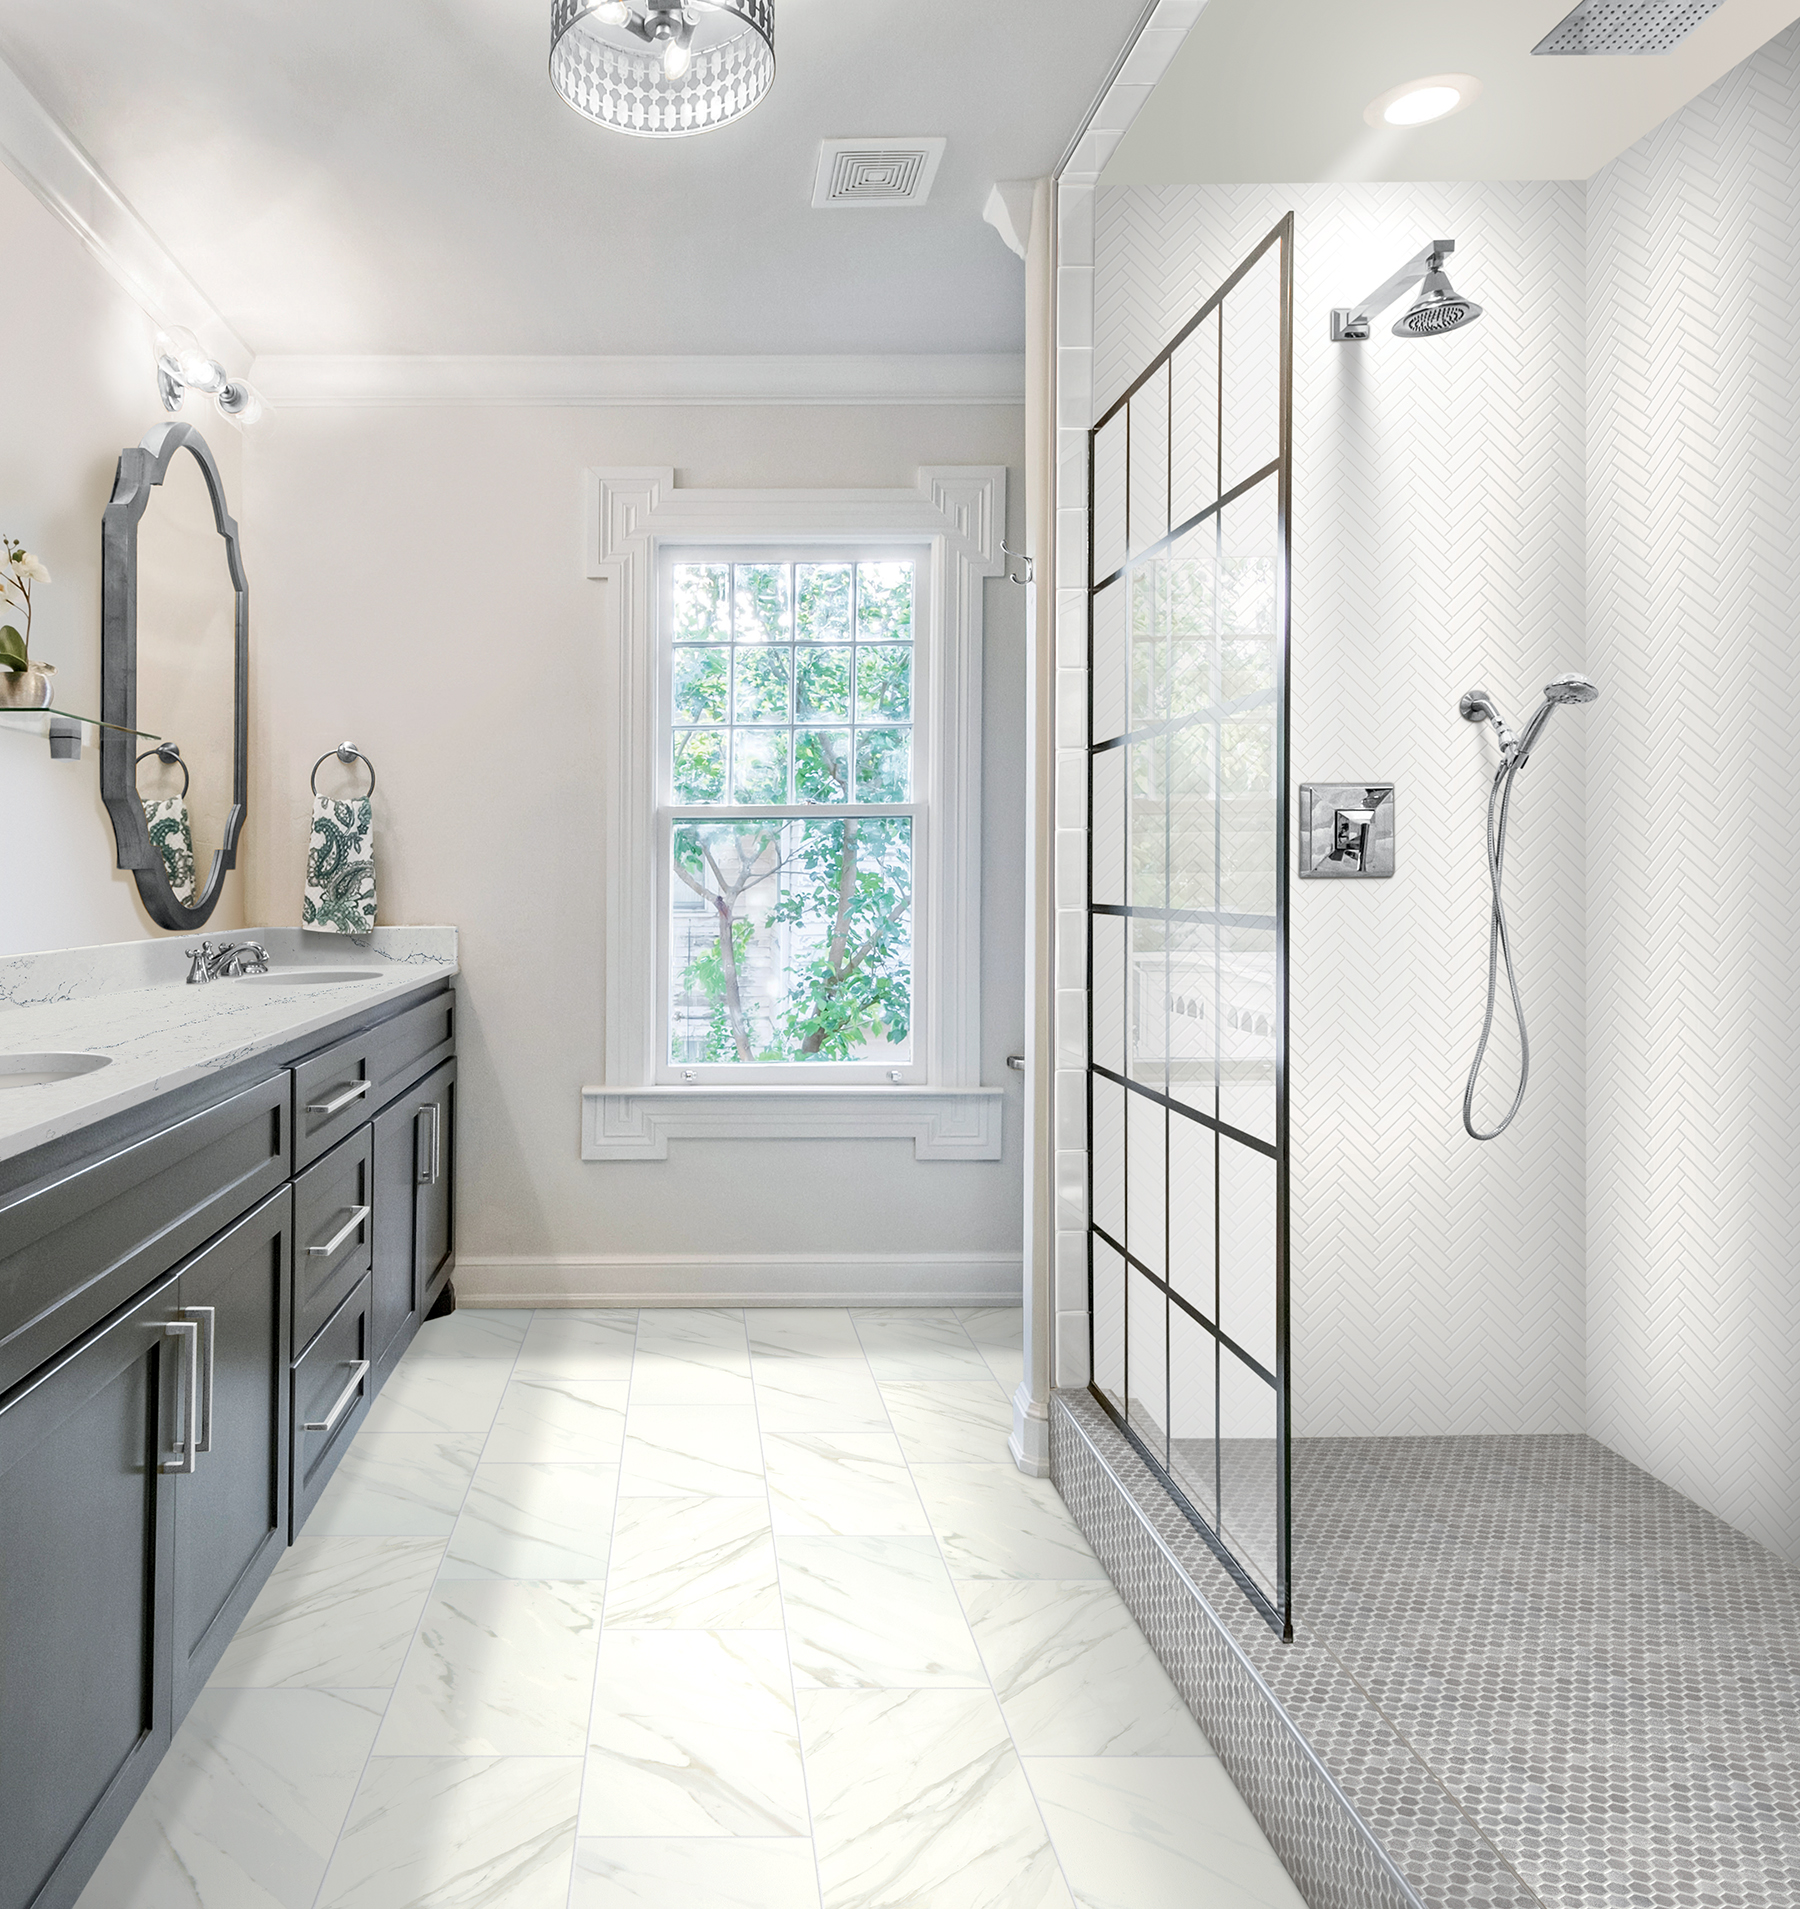 A Ceramic Tile Floor That Installs Twice As Fast Residential Products Online